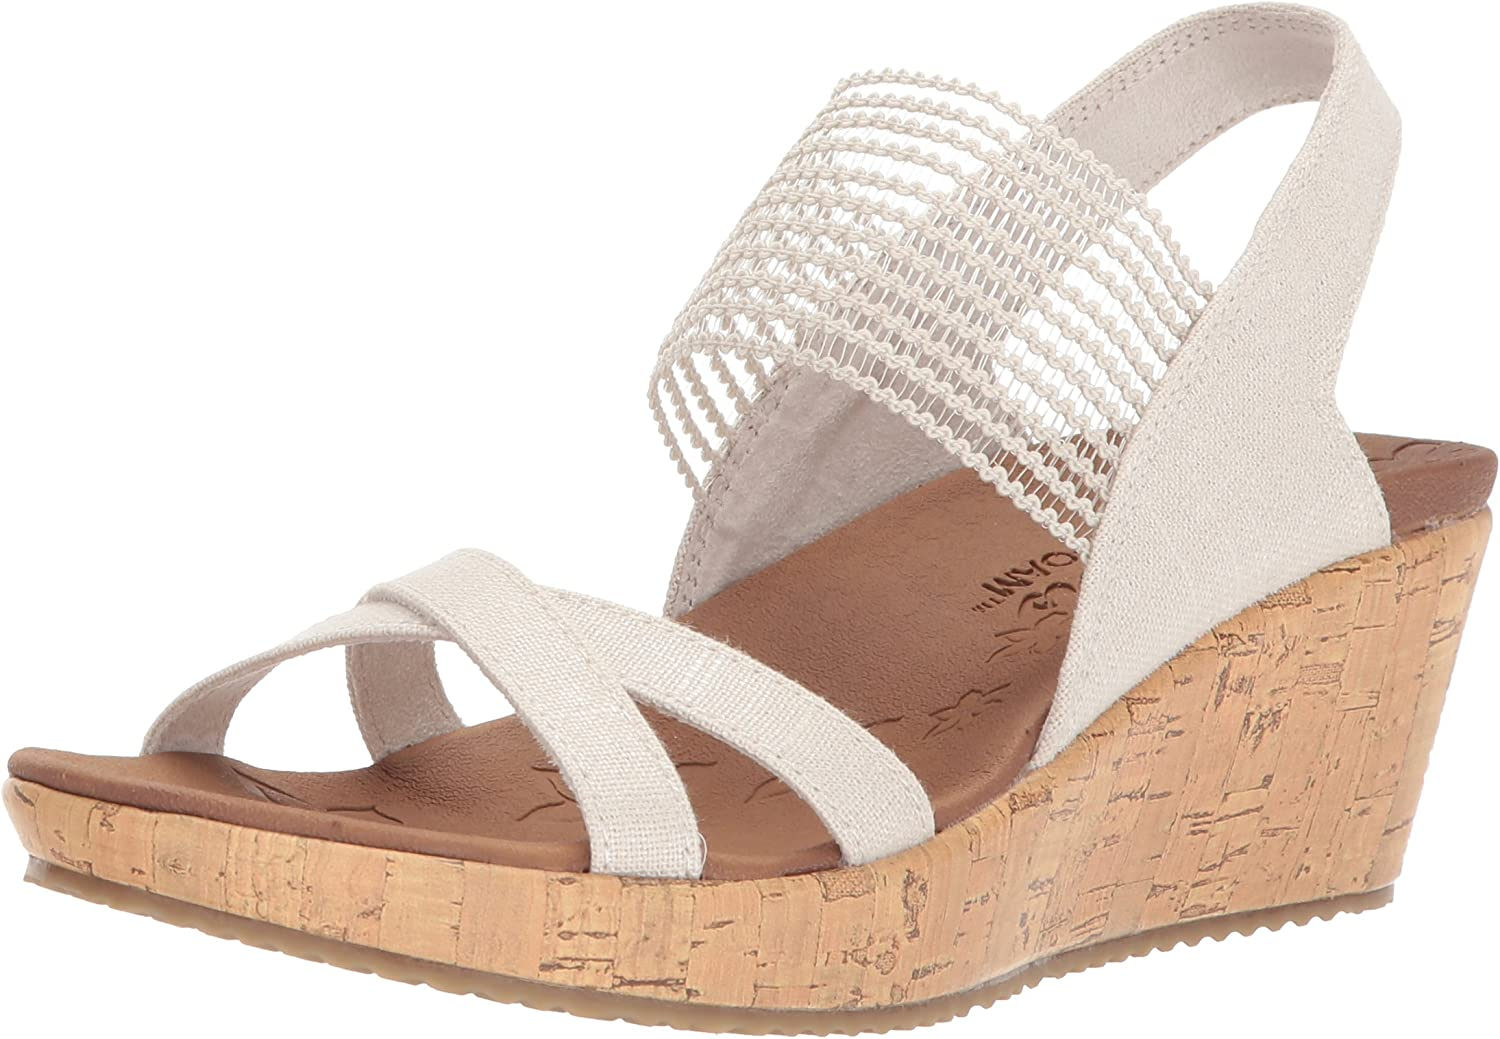 Skechers Womens Beverlee - High Tea Wedges